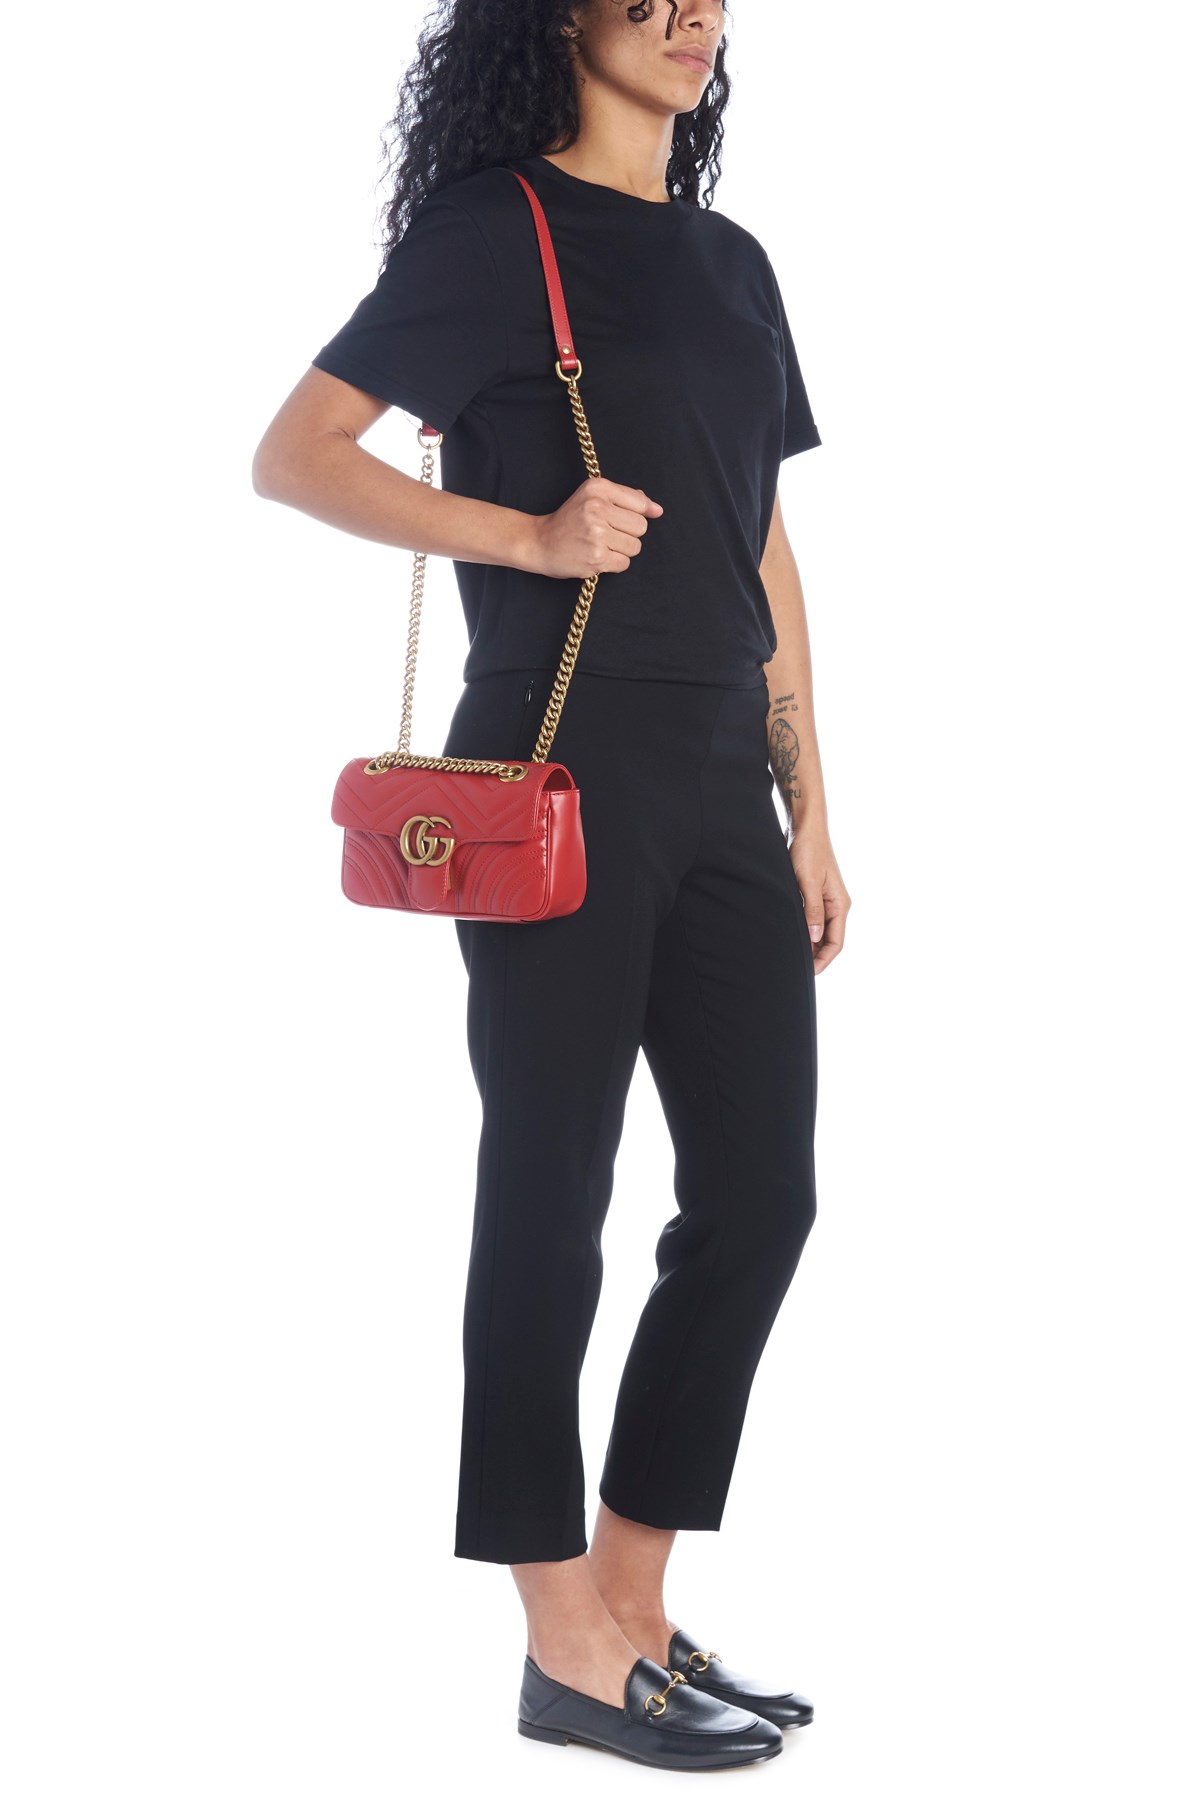 0dbb0aa1f gucci 'GG Marmont 2.0' Crossbody Bag available on julian-fashion.com ...